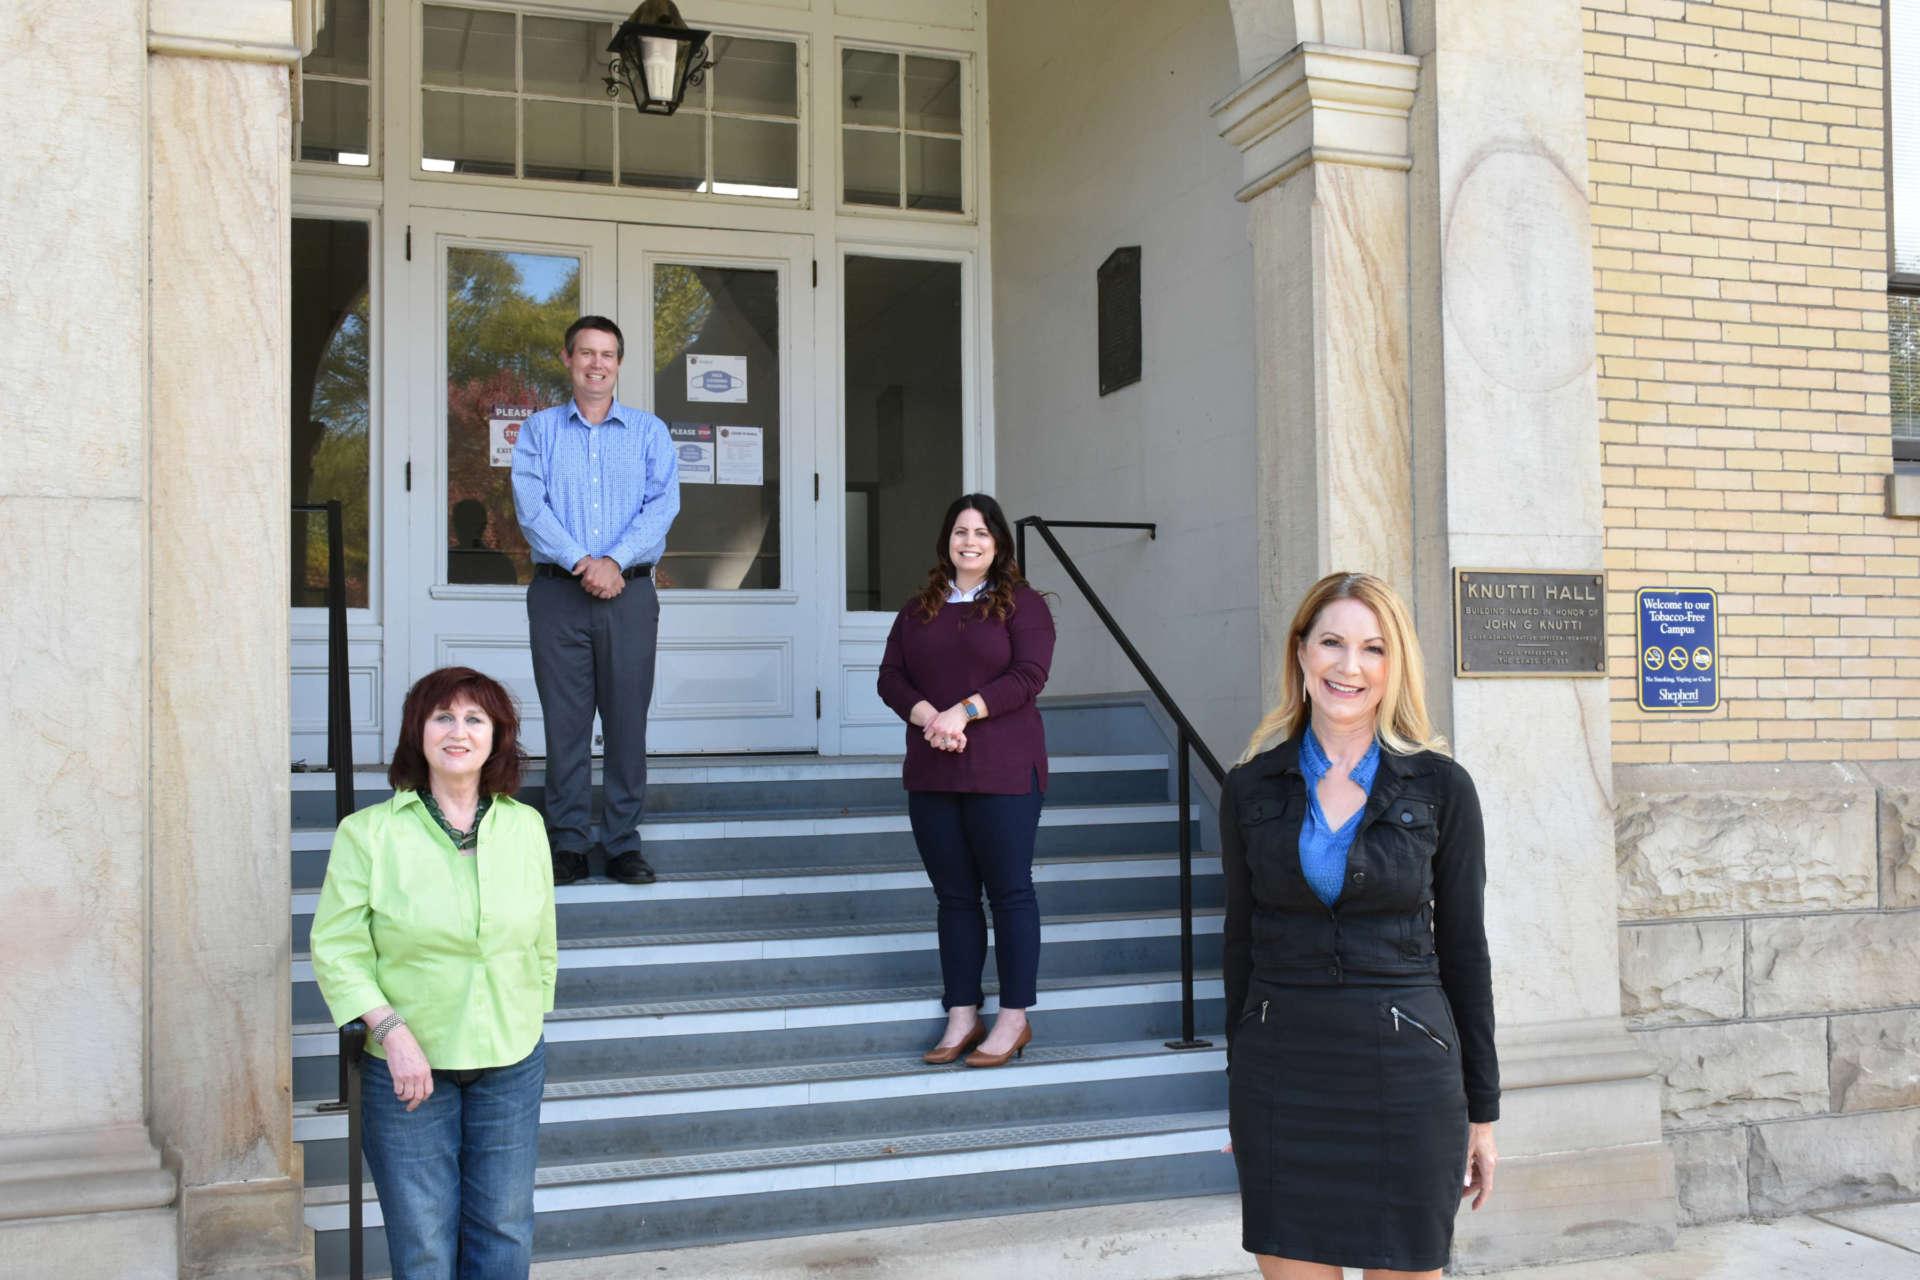 Pictured (l. to r.) are Dr. Dawne Burke, professor of education; Dr. Jason Allen, assistant professor of education; Helen Baker, field placement coordinator and lecturer; and Dr. Jennifer Penland, director, School of Education.